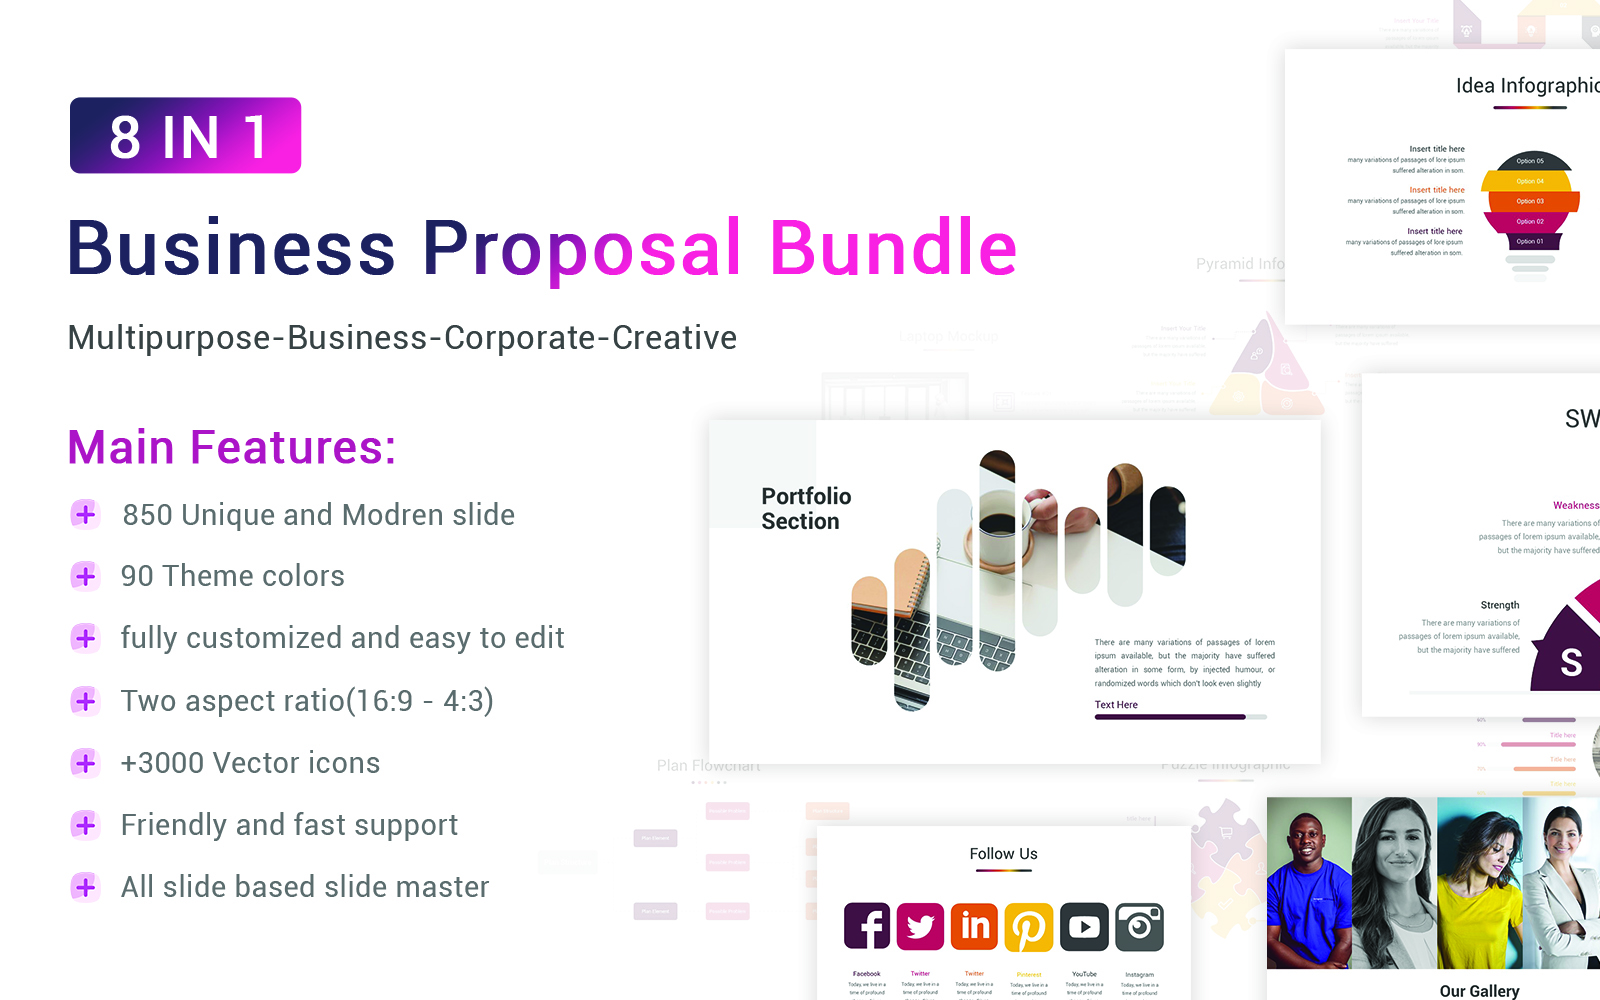 Business Proposal Bundle PowerPoint template